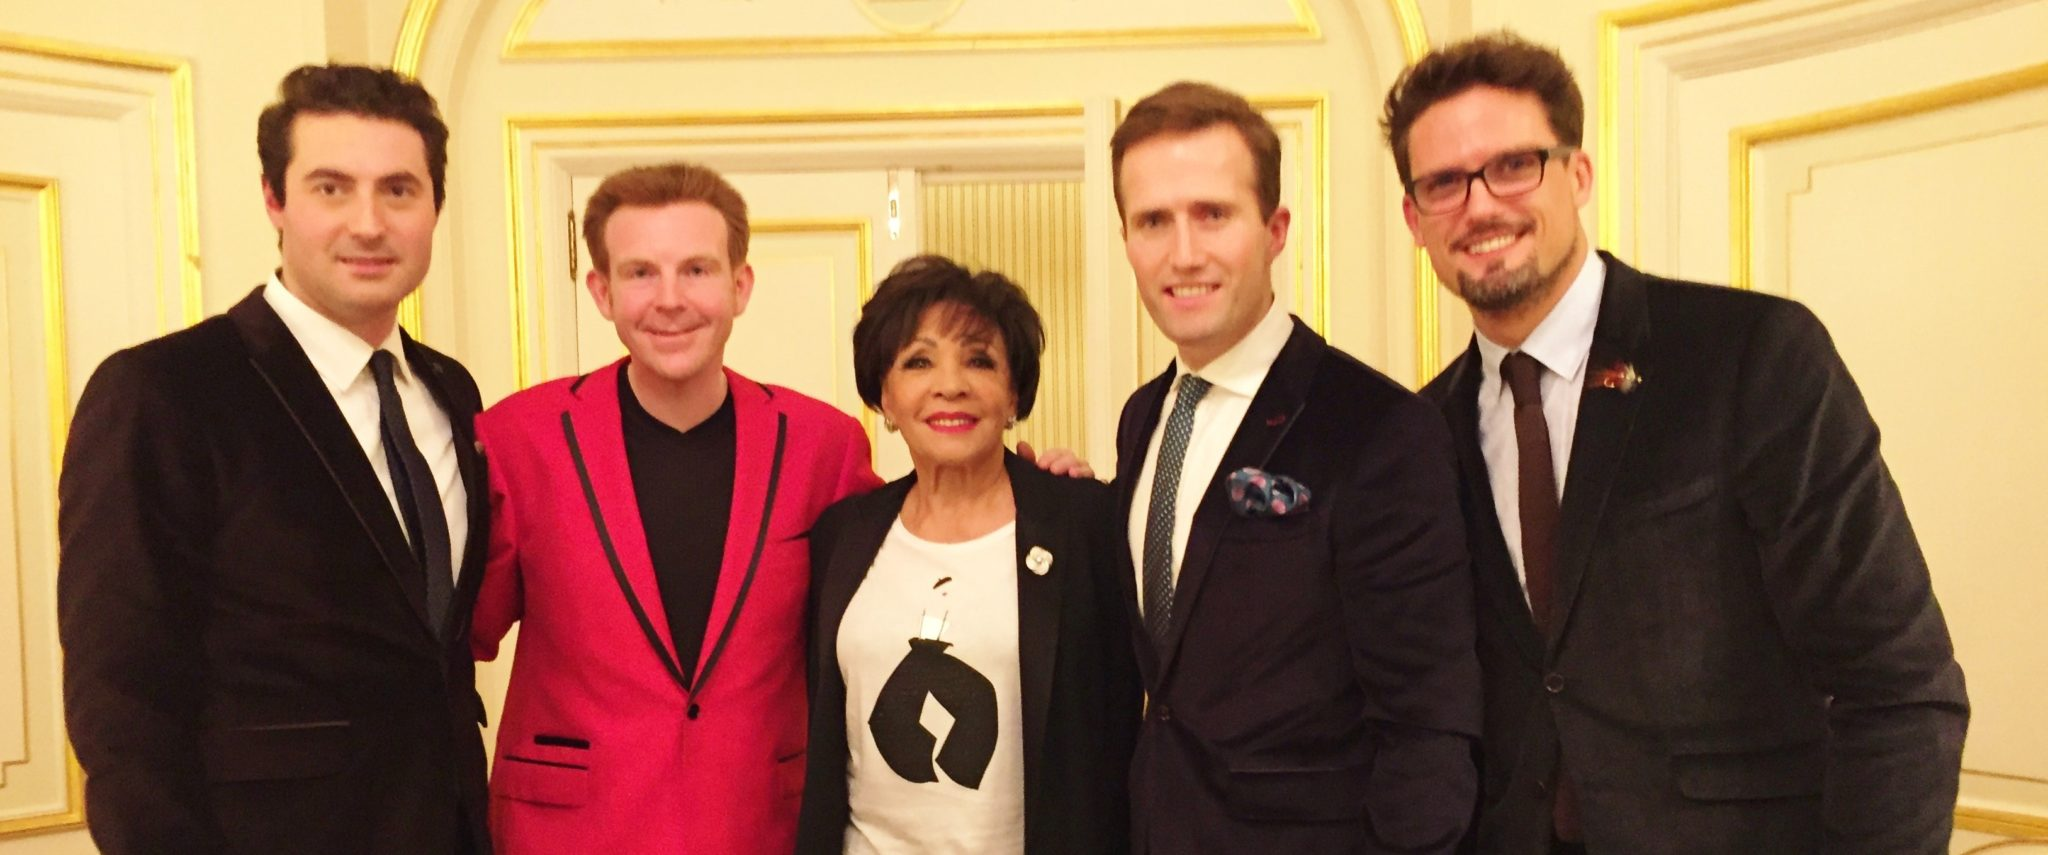 Enjoy Celebrity Radio's Dame Shirley Bassey World Exclusive In-Depth TV Interview… Dame Shirley Bassey has teamed up with the brilliant classical trio Blake for her first […]